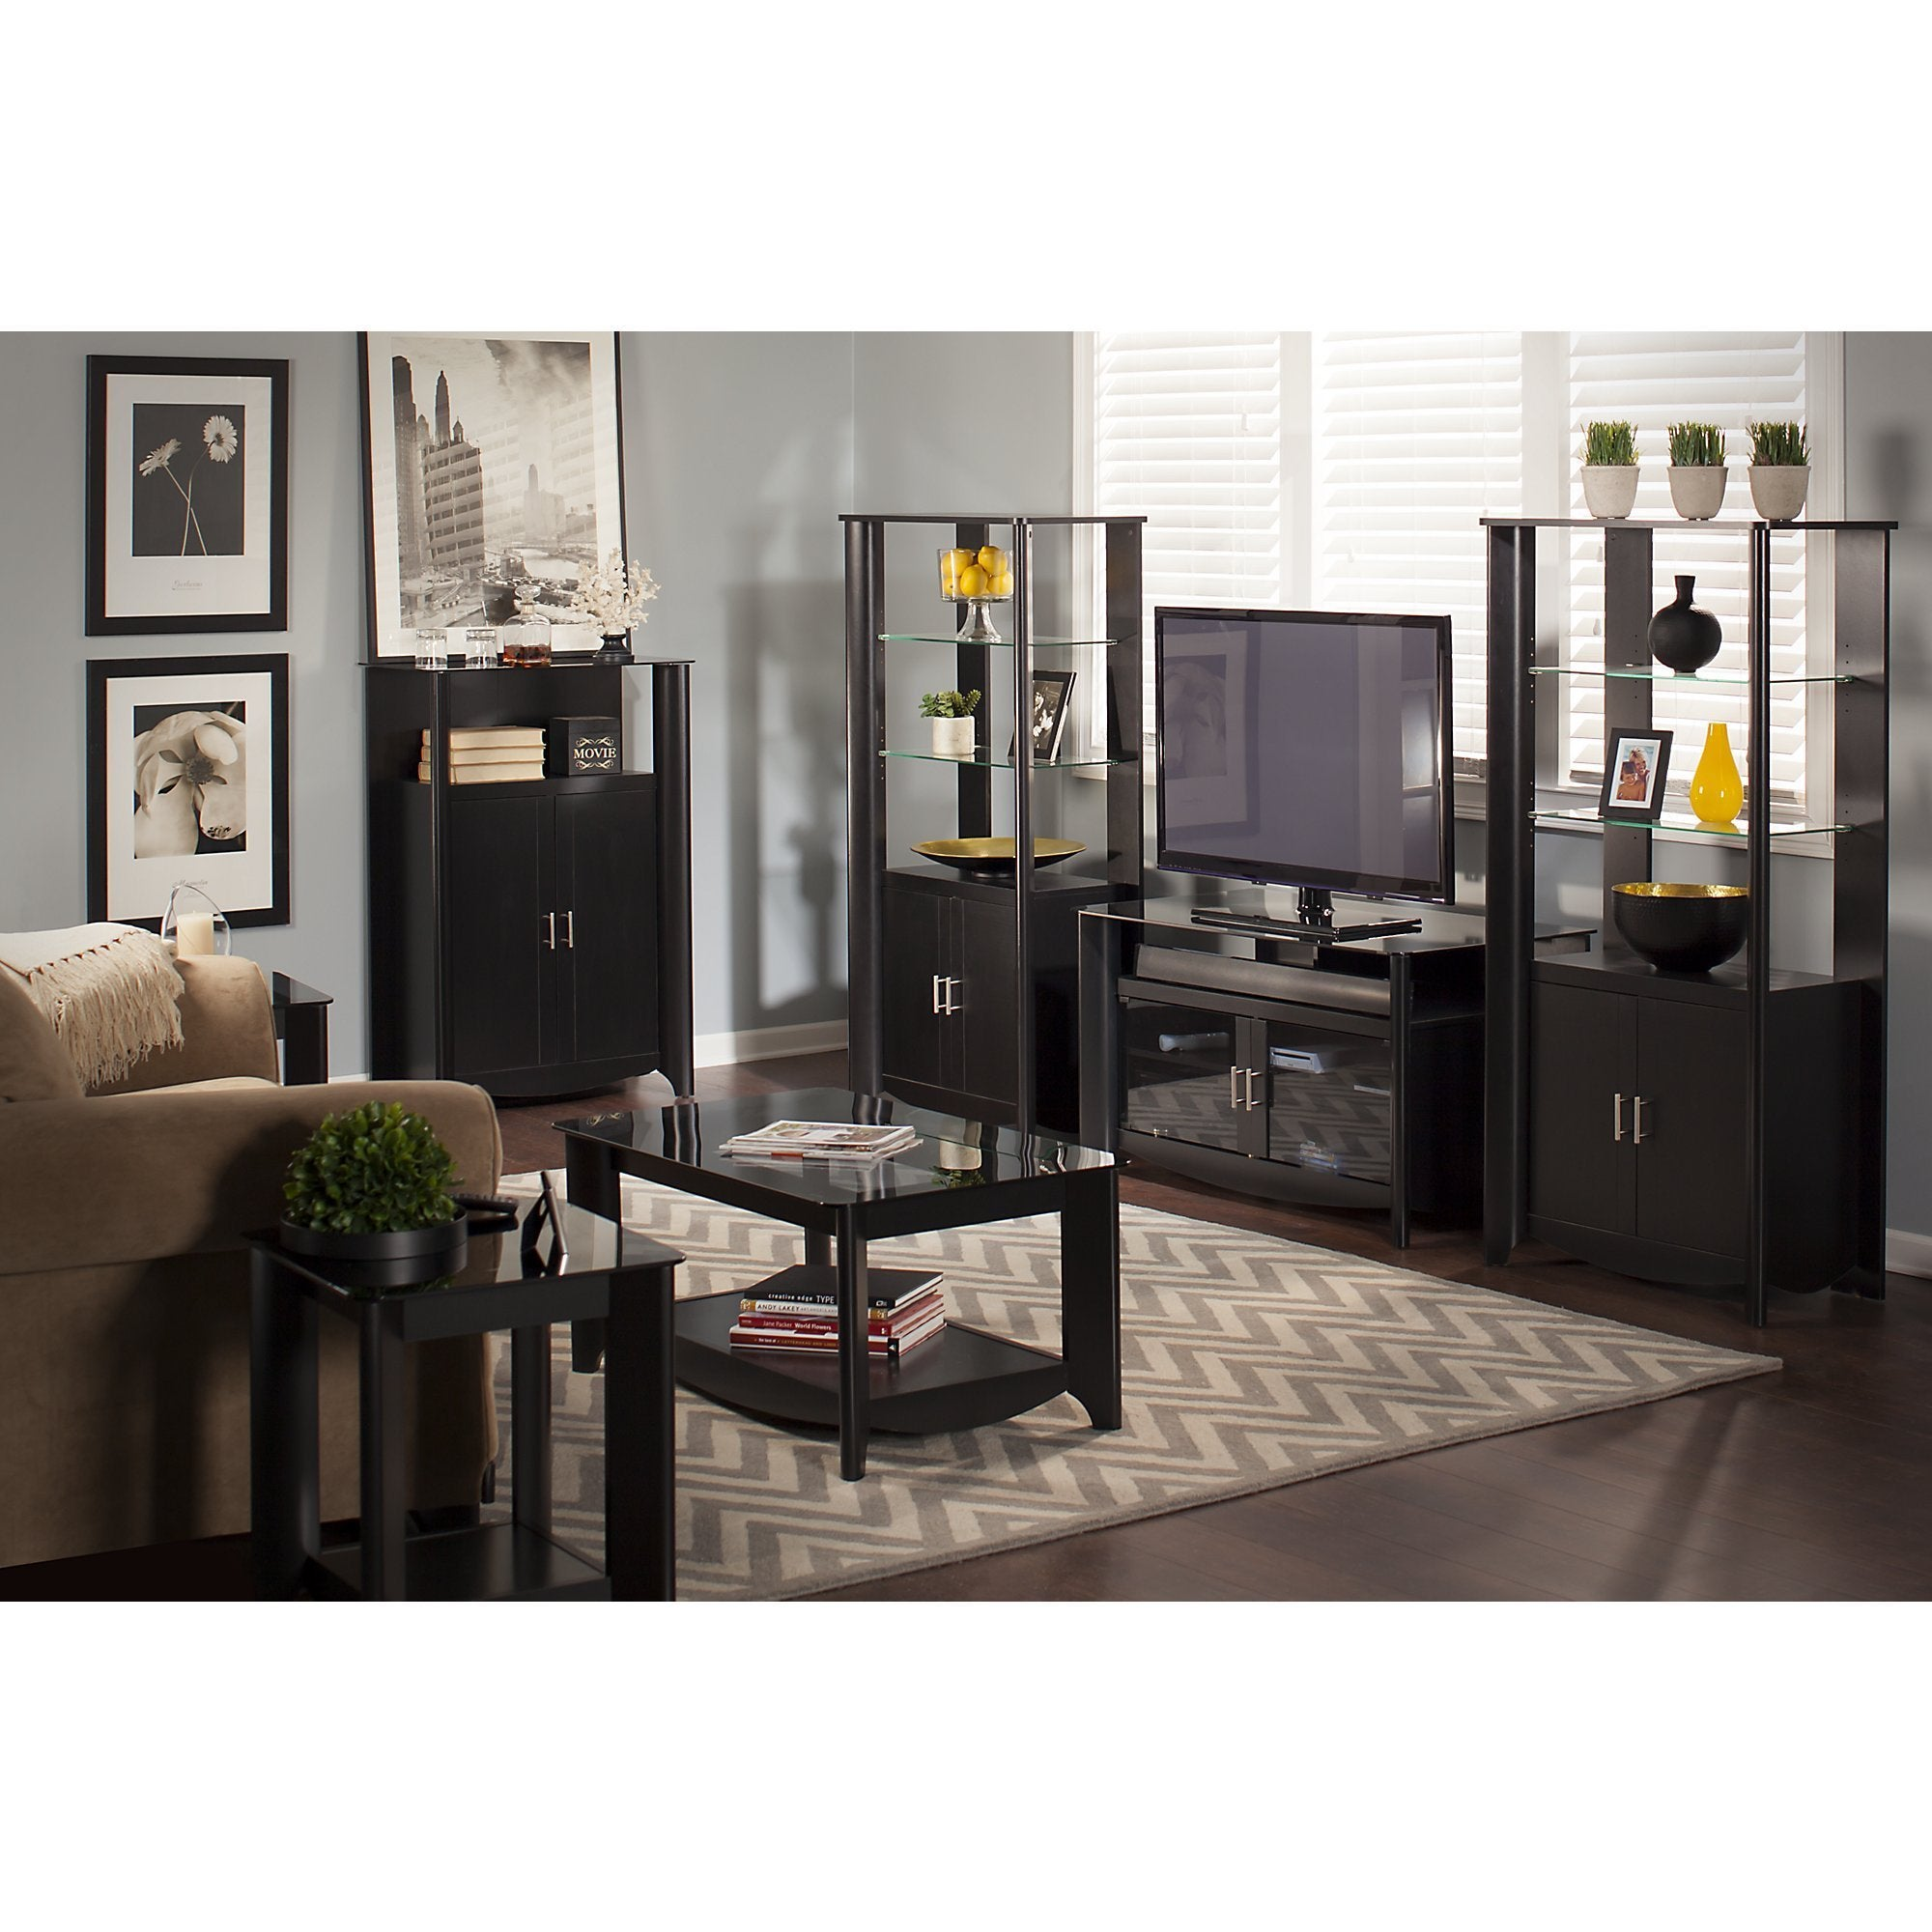 Aero 56 Inch TV Stand Coffee Table End Tables and Storage Free